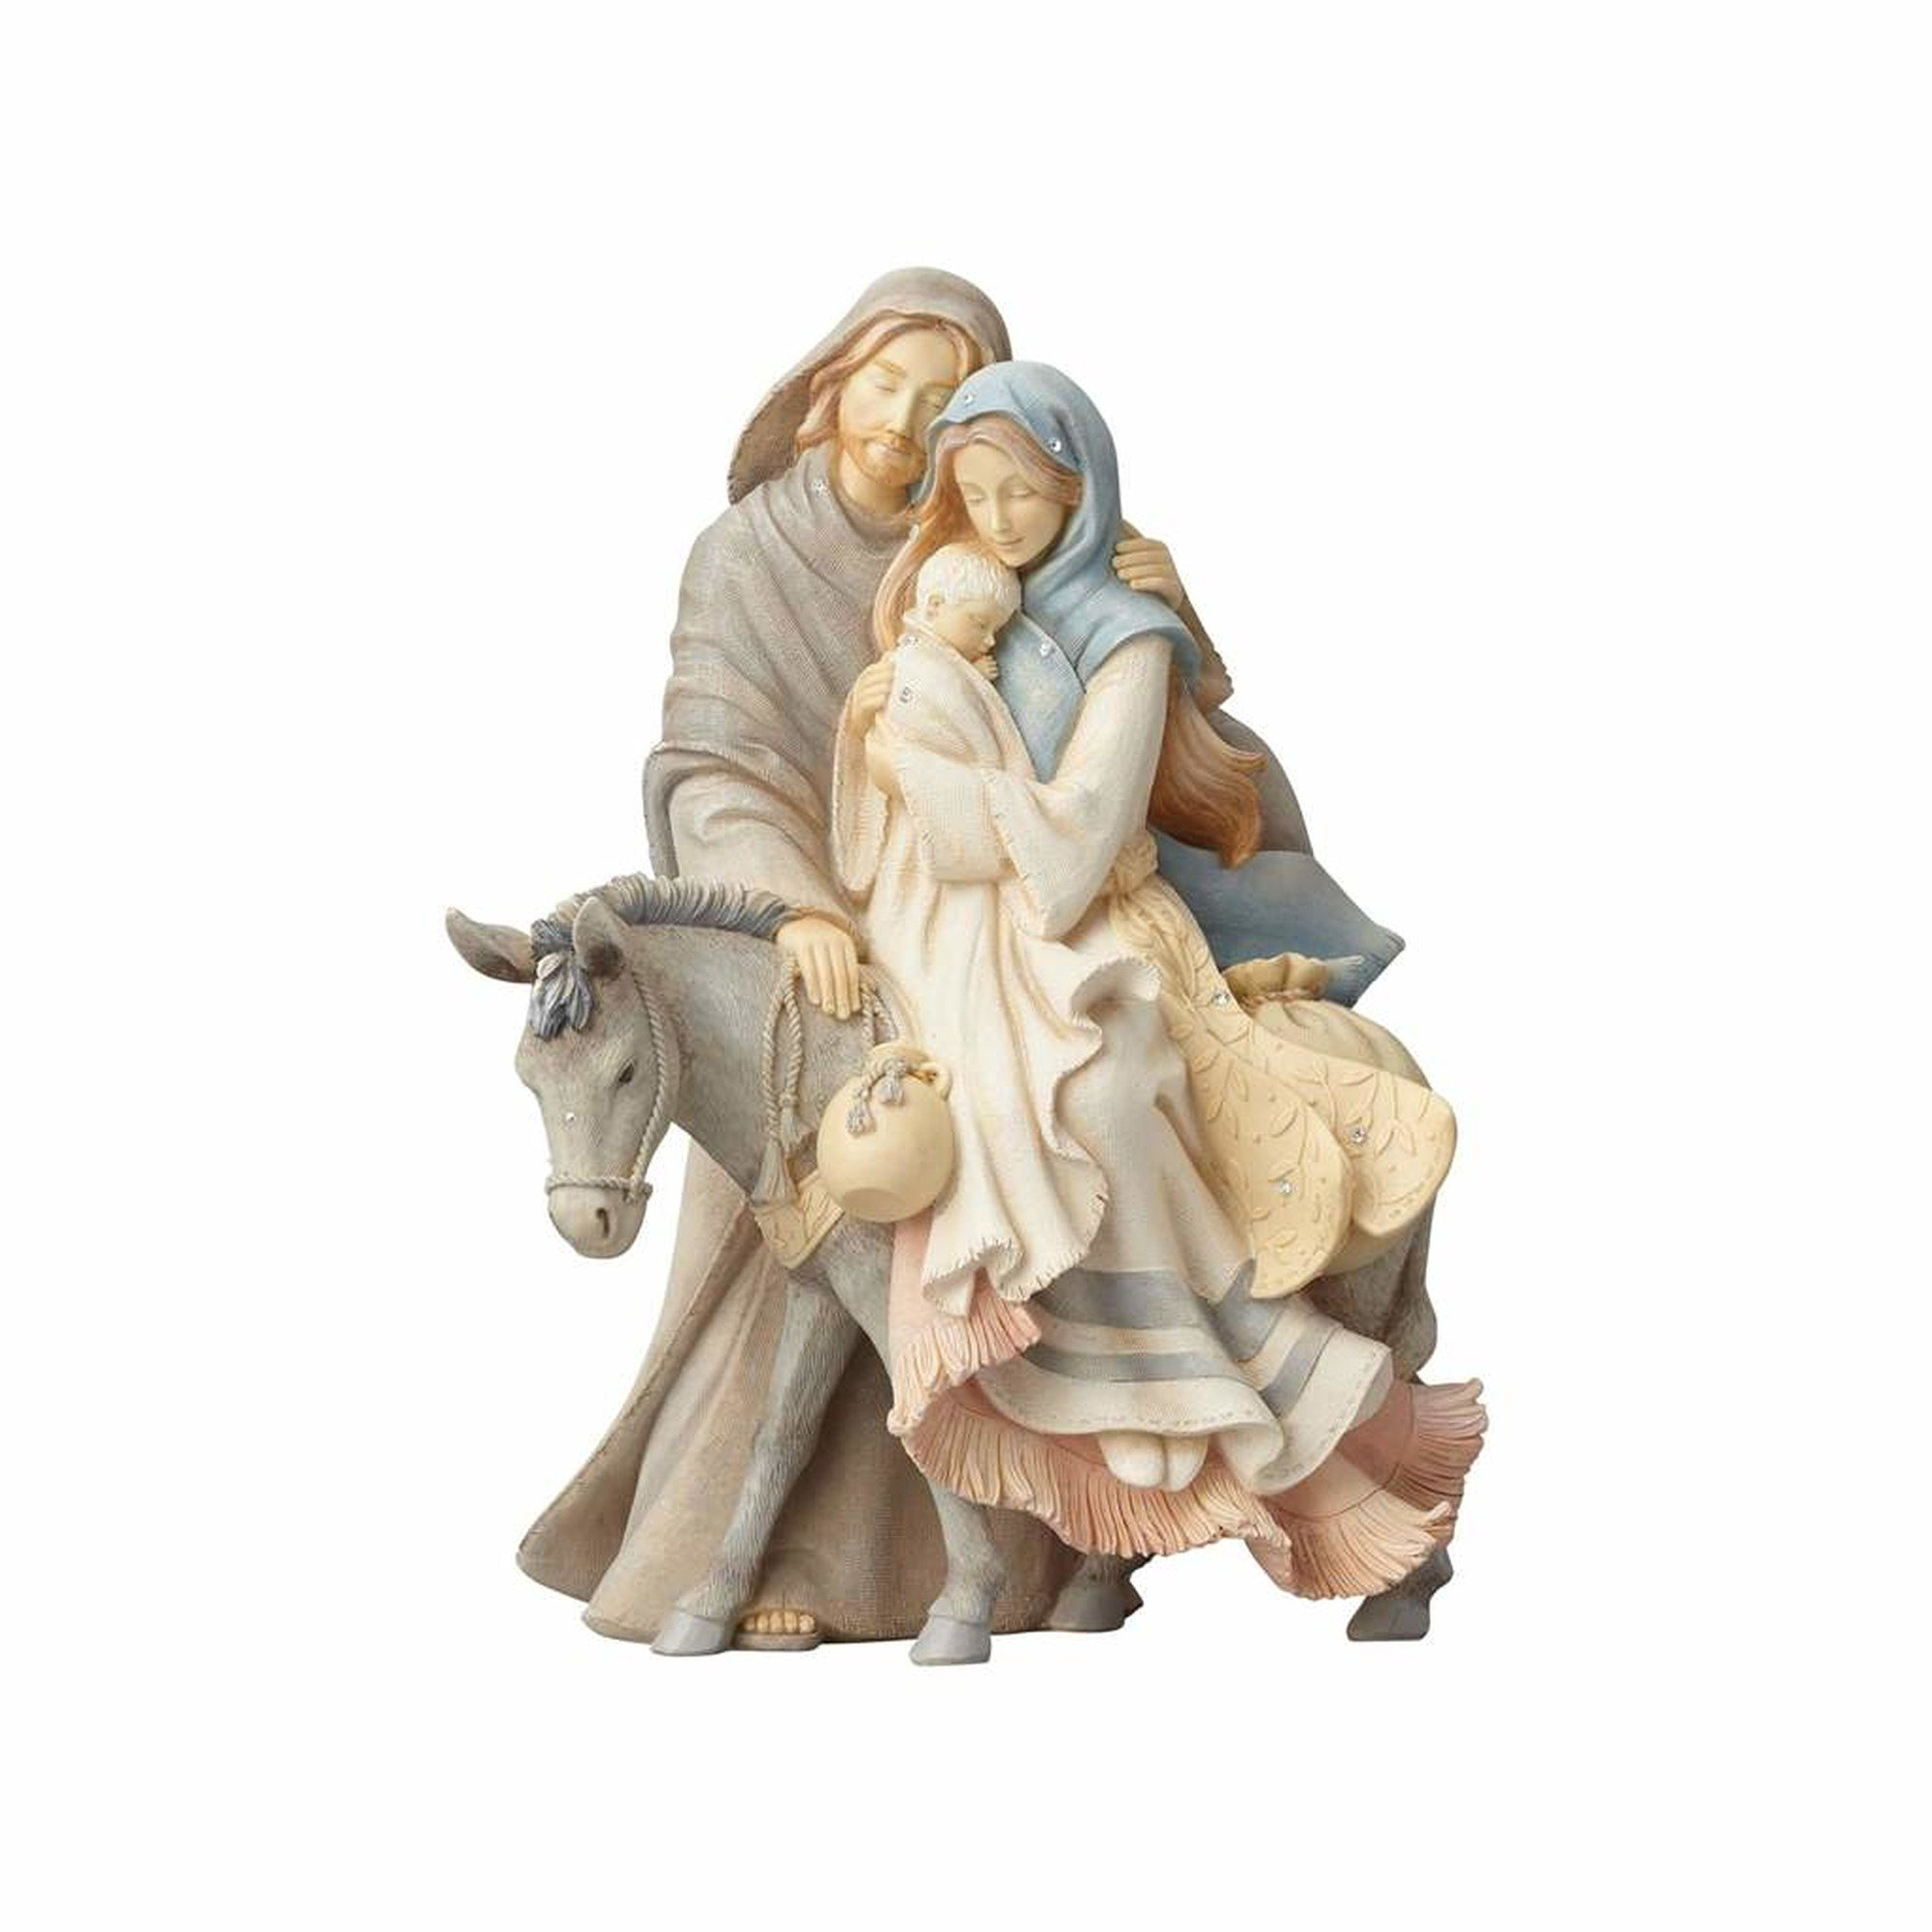 Foundations (4058697) Holy Family with Donkey Stone Resin Figurine, 9.45""